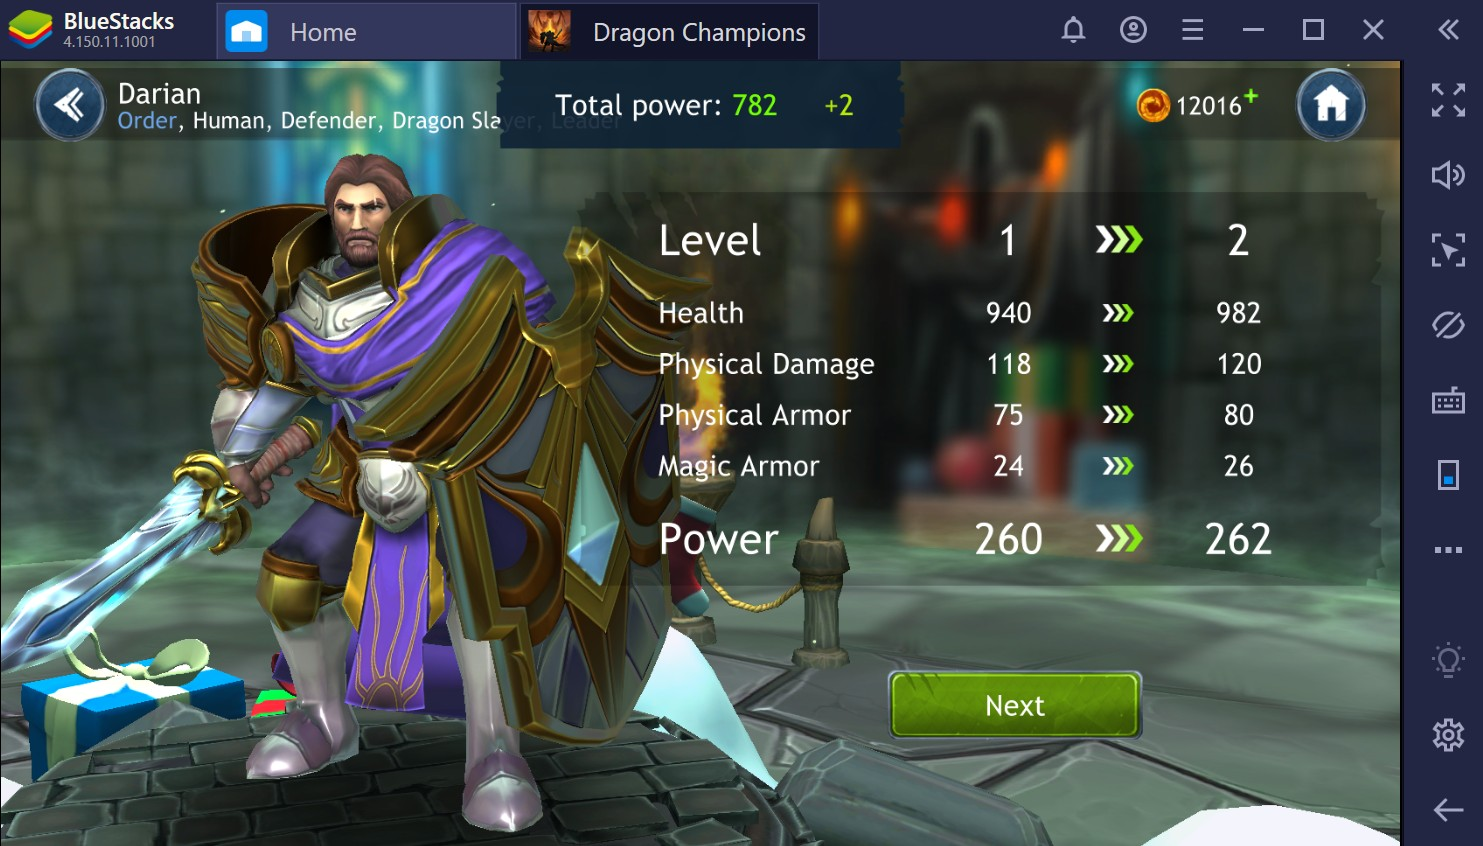 Dragon Champions: como jogar no PC com o BlueStacks